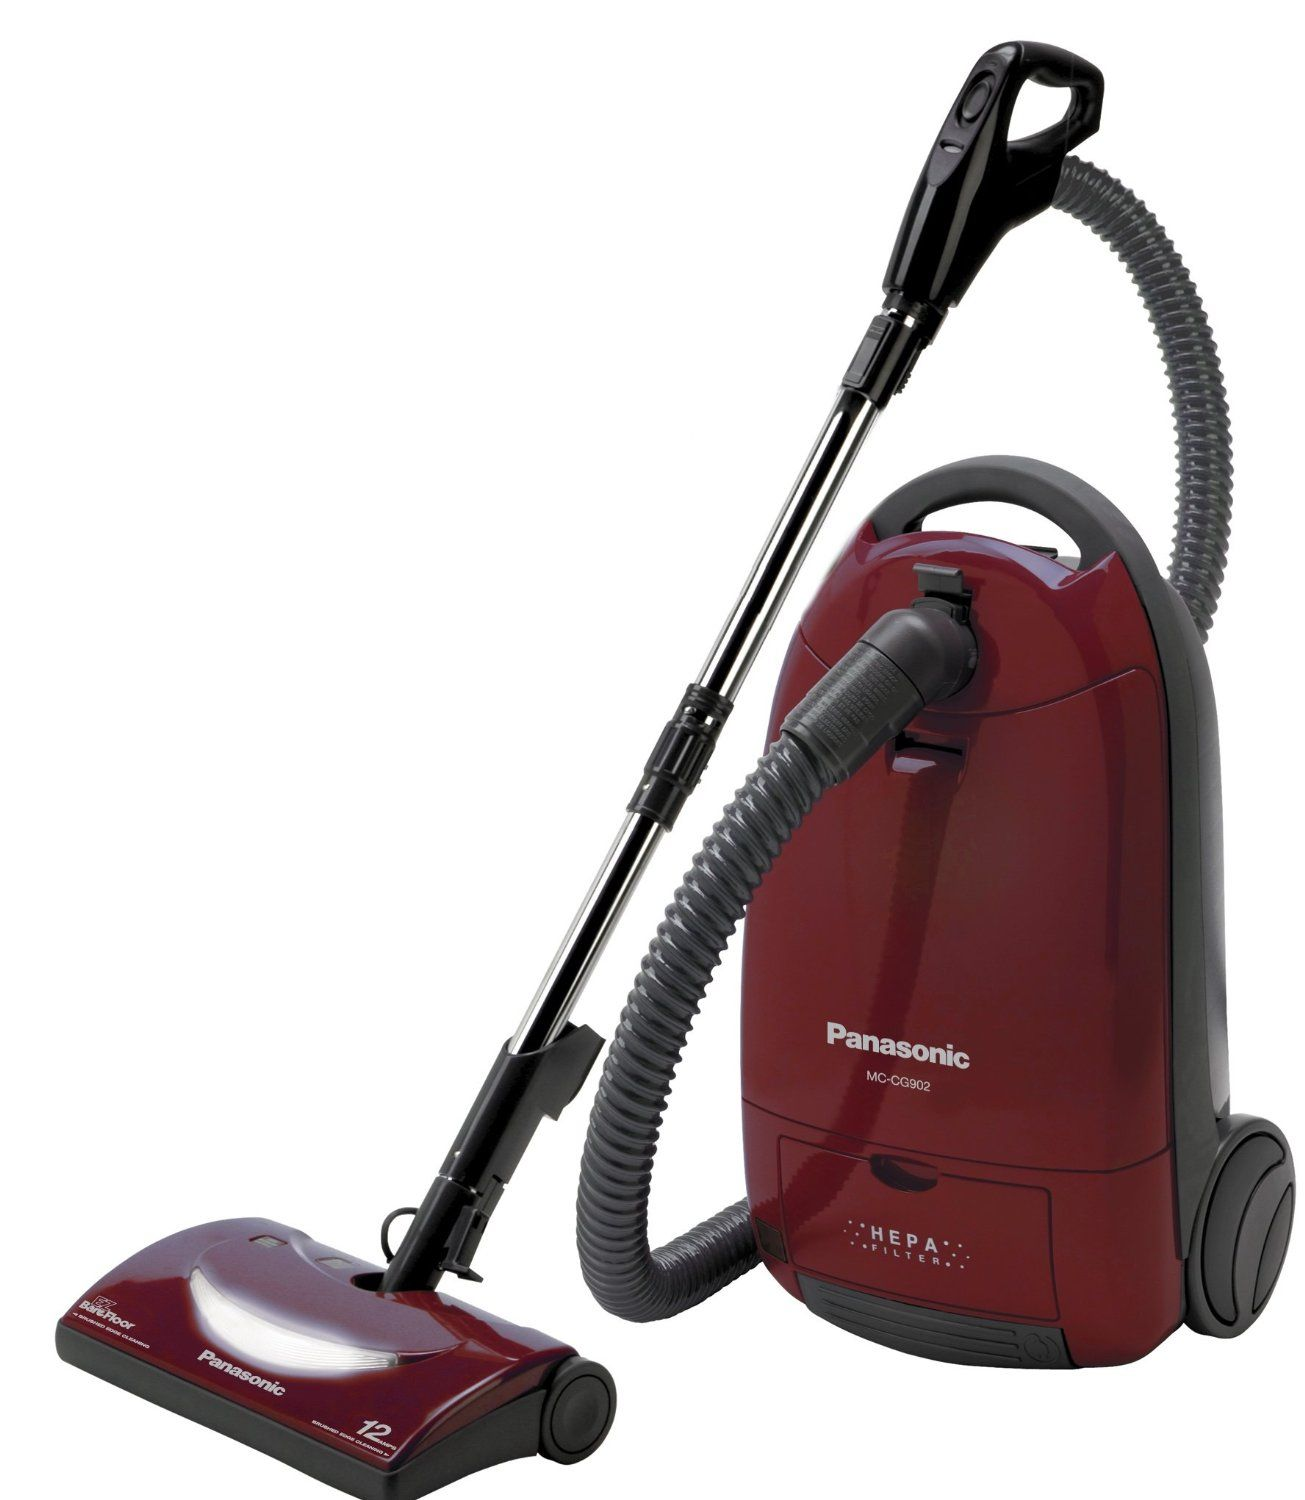 Panasonic Full Size Bag Canister Vacuum Cleaner Canister